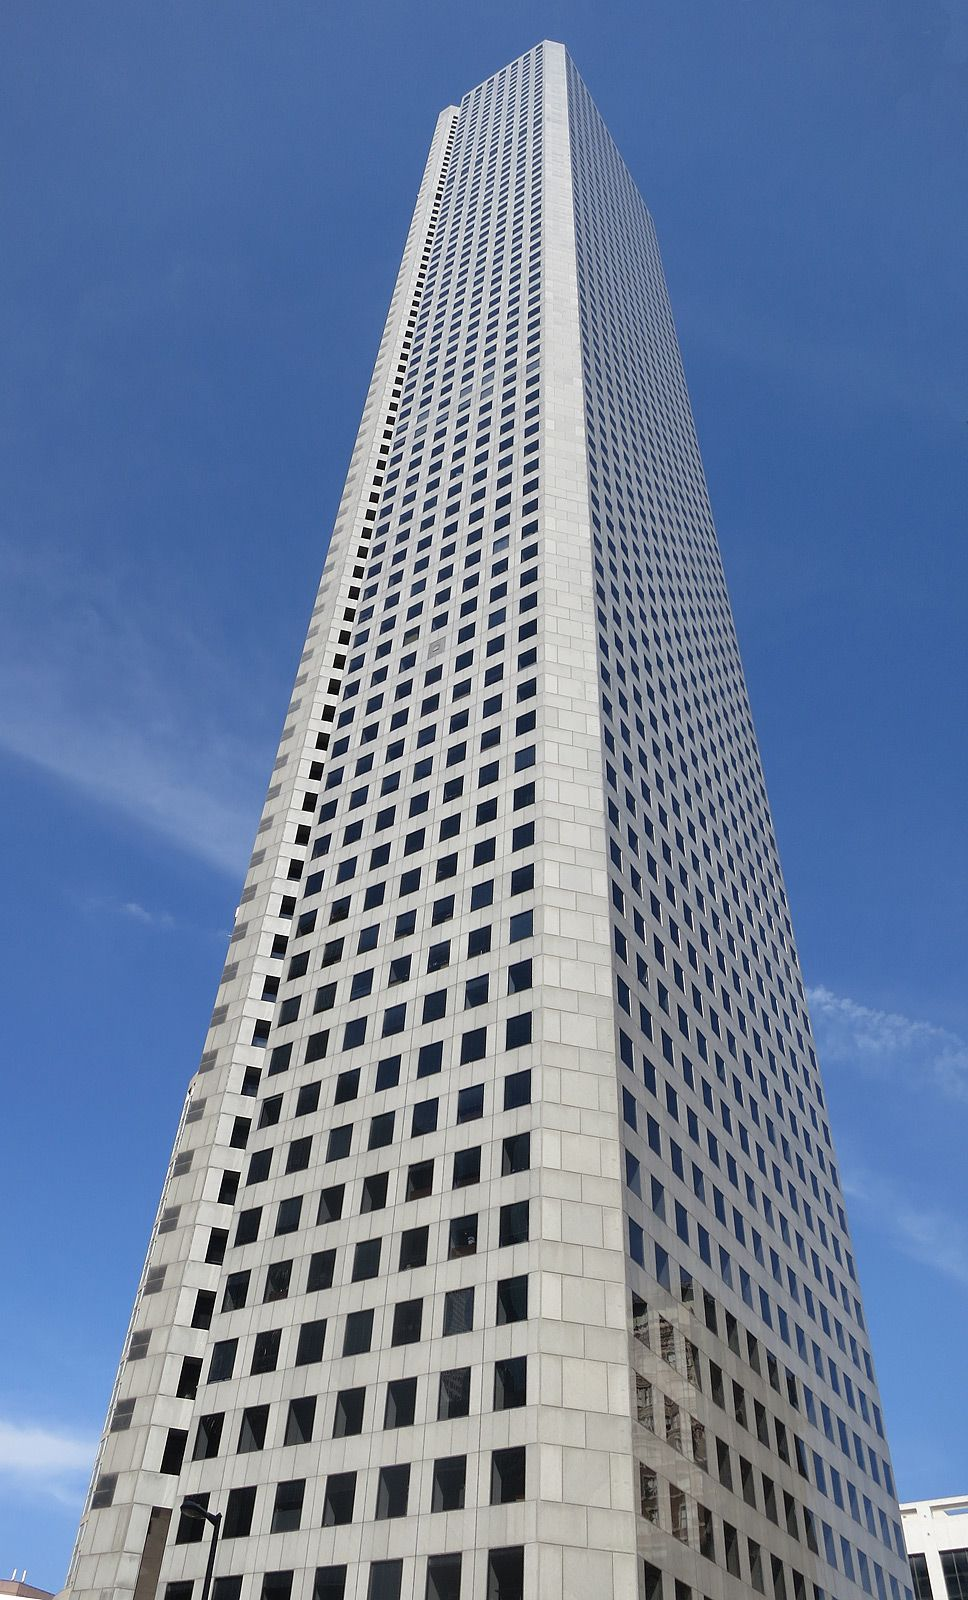 JPMorgan Chase Tower is the tallest building in Houston and the ...